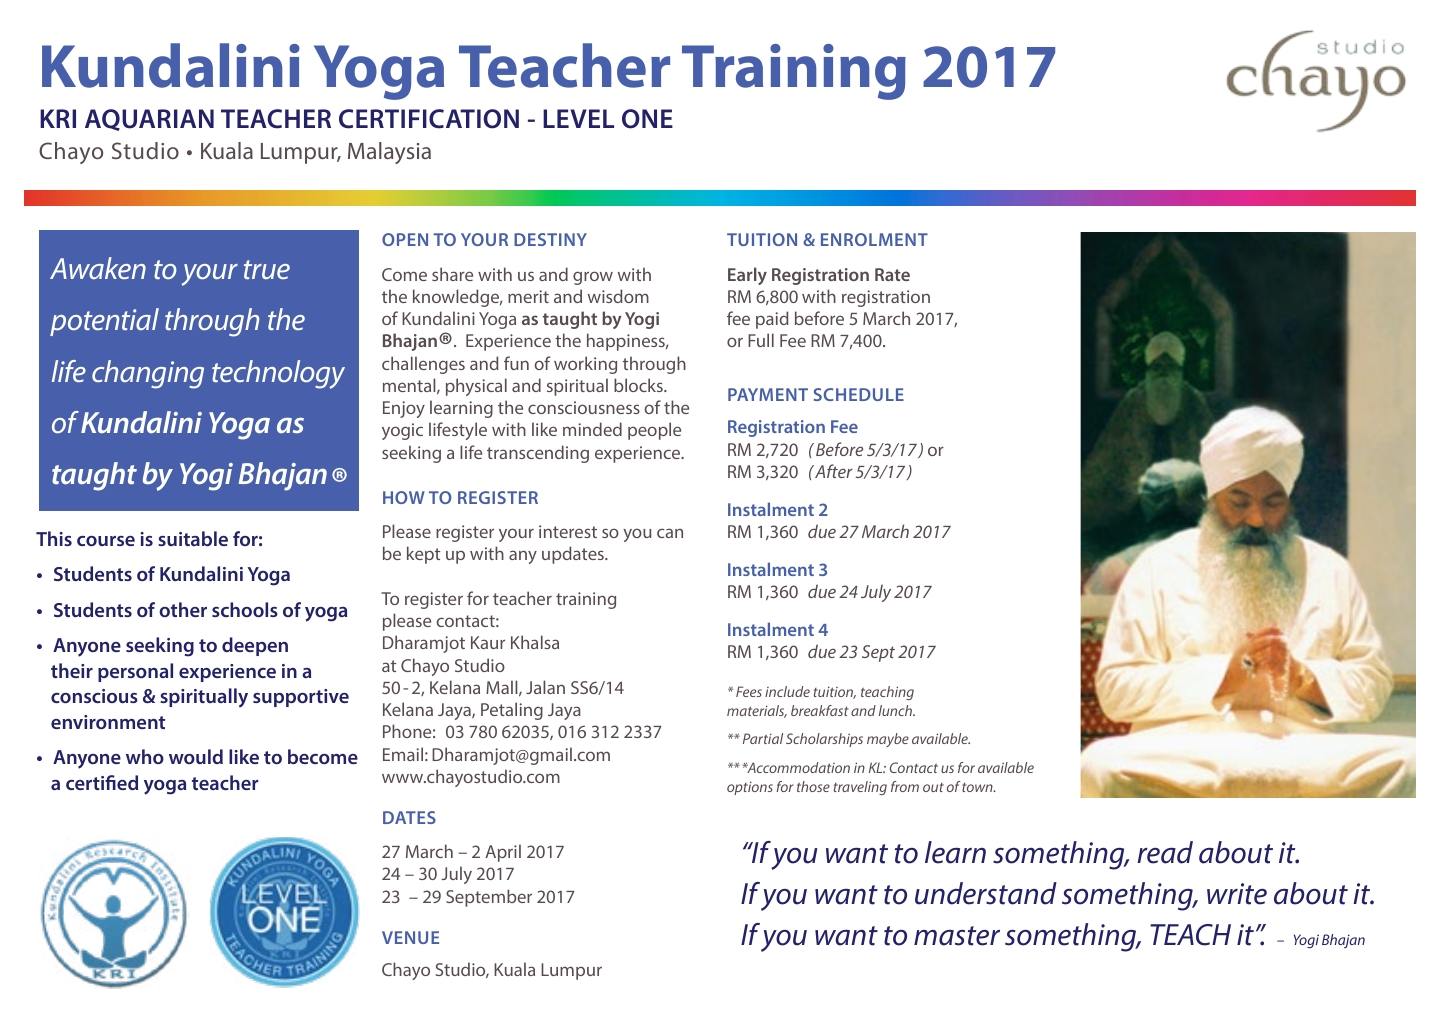 kundalini-yoga-l1-teacher-training-2017-img1